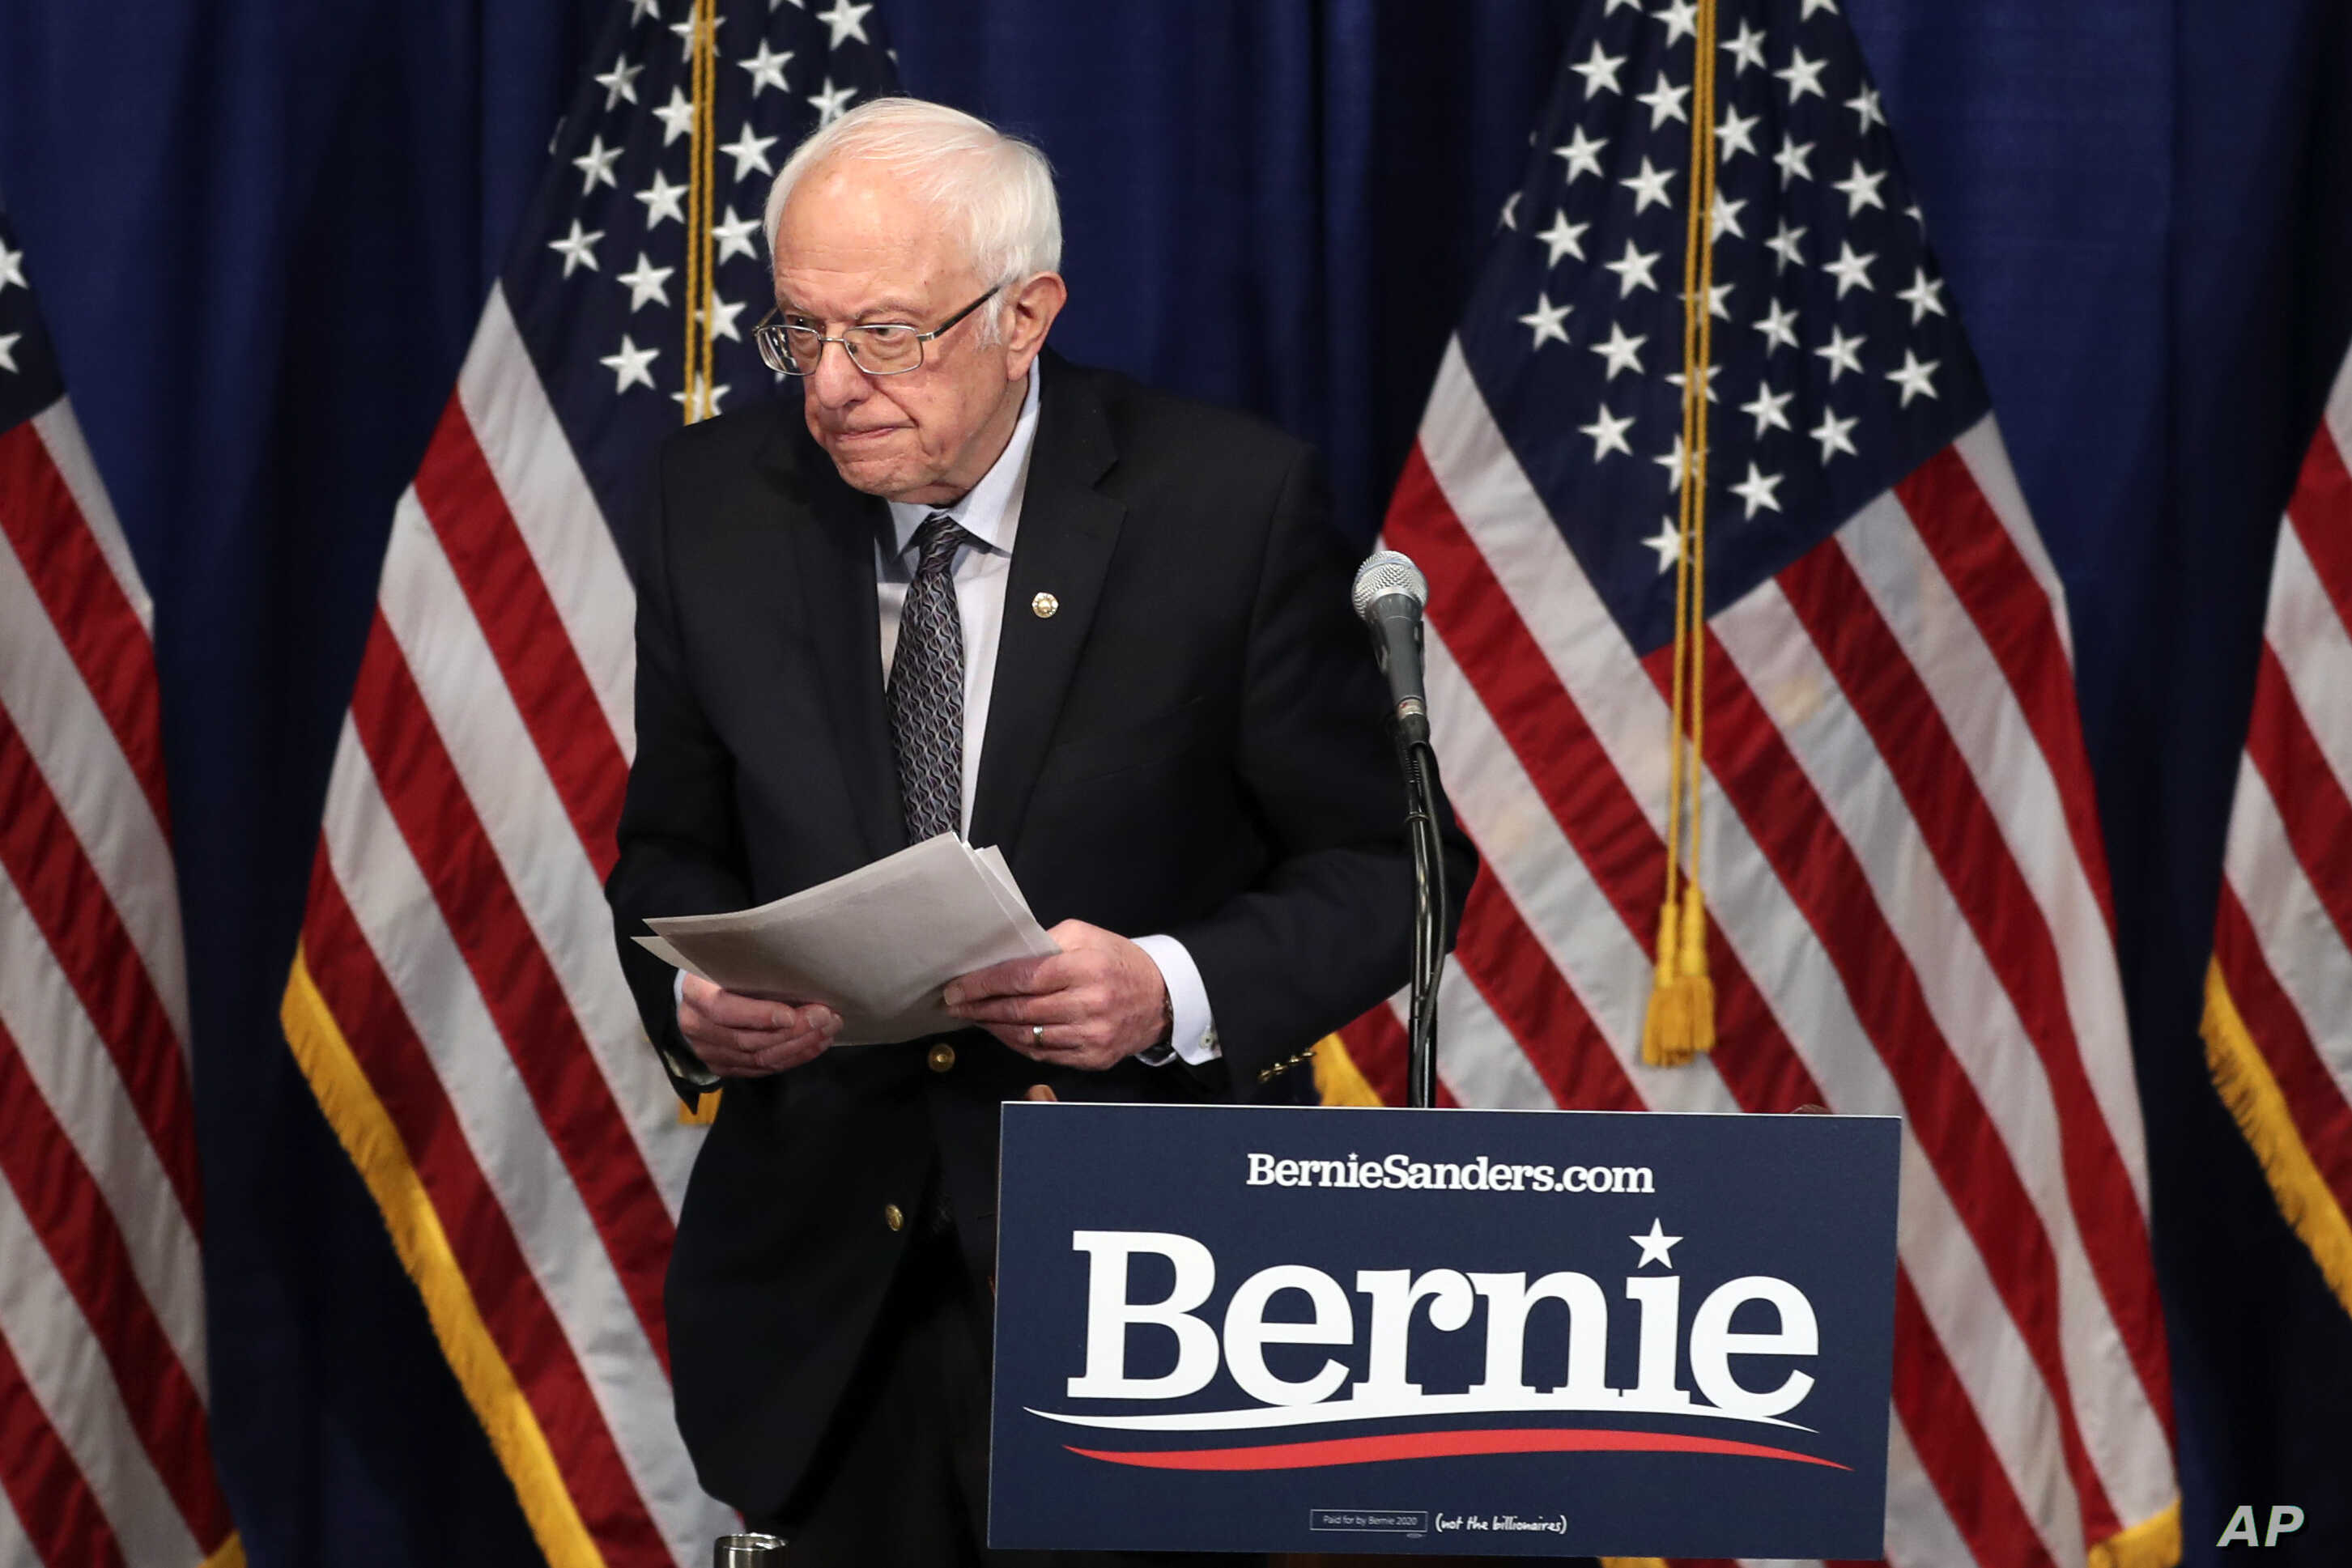 Sanders Wins North Dakota Caucus